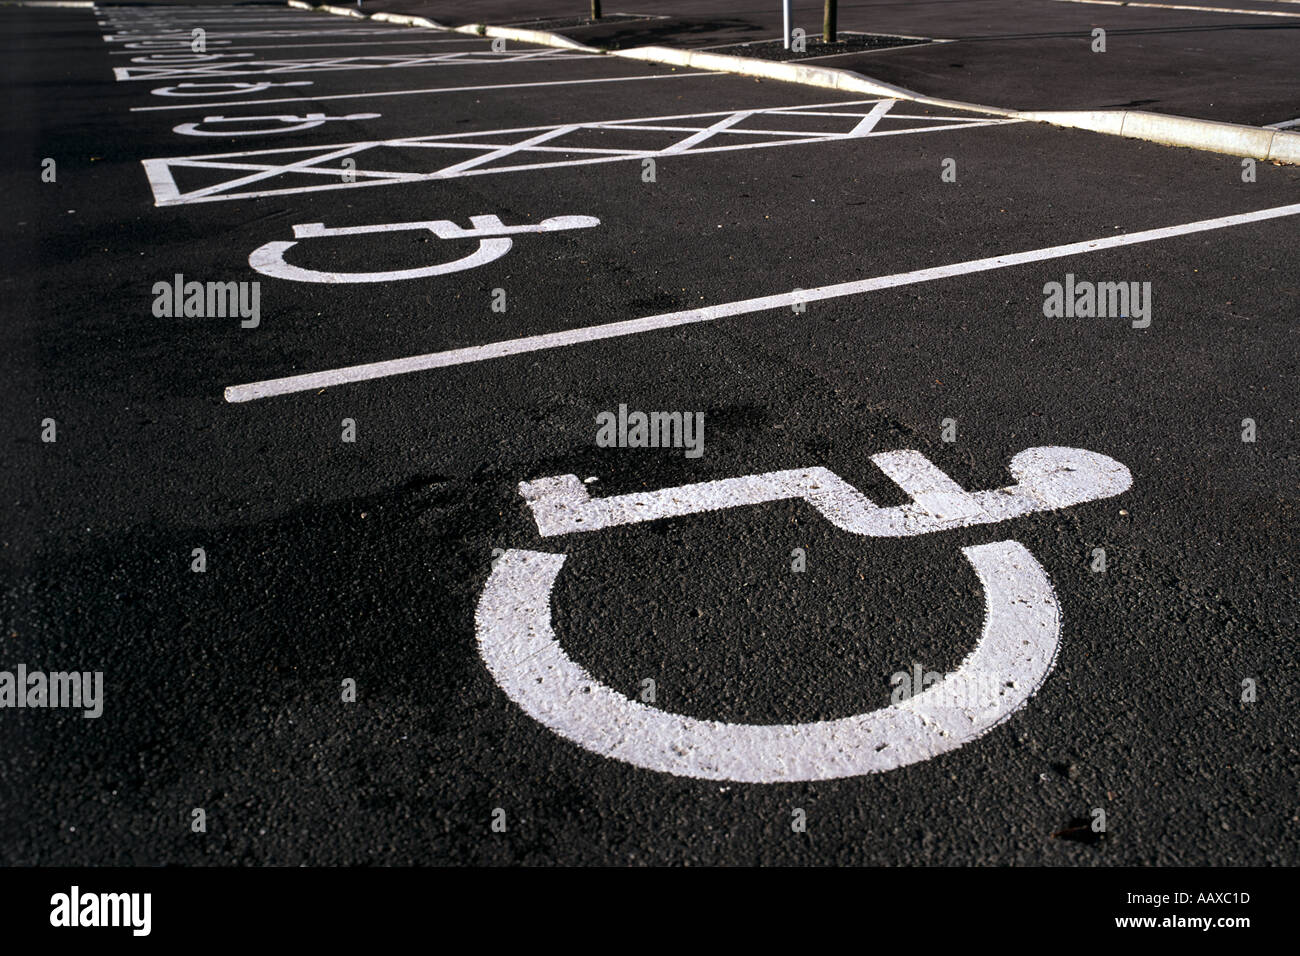 Disabled Parking Space in a car park. - Stock Image